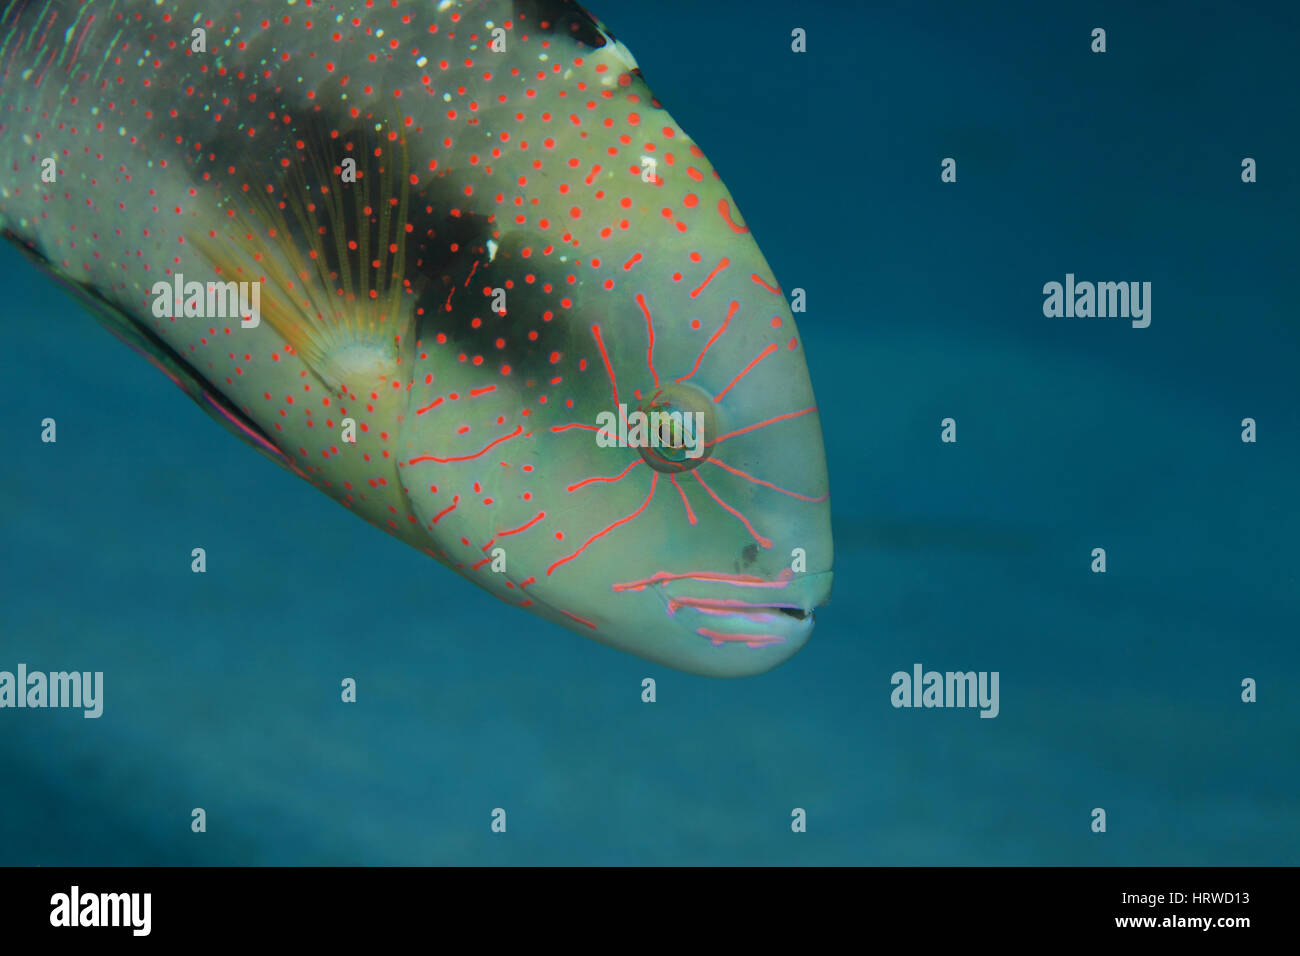 Abudjubbe wrasse fish (Cheilinus abudjubbe) underwater in the tropical Red Sea - Stock Image